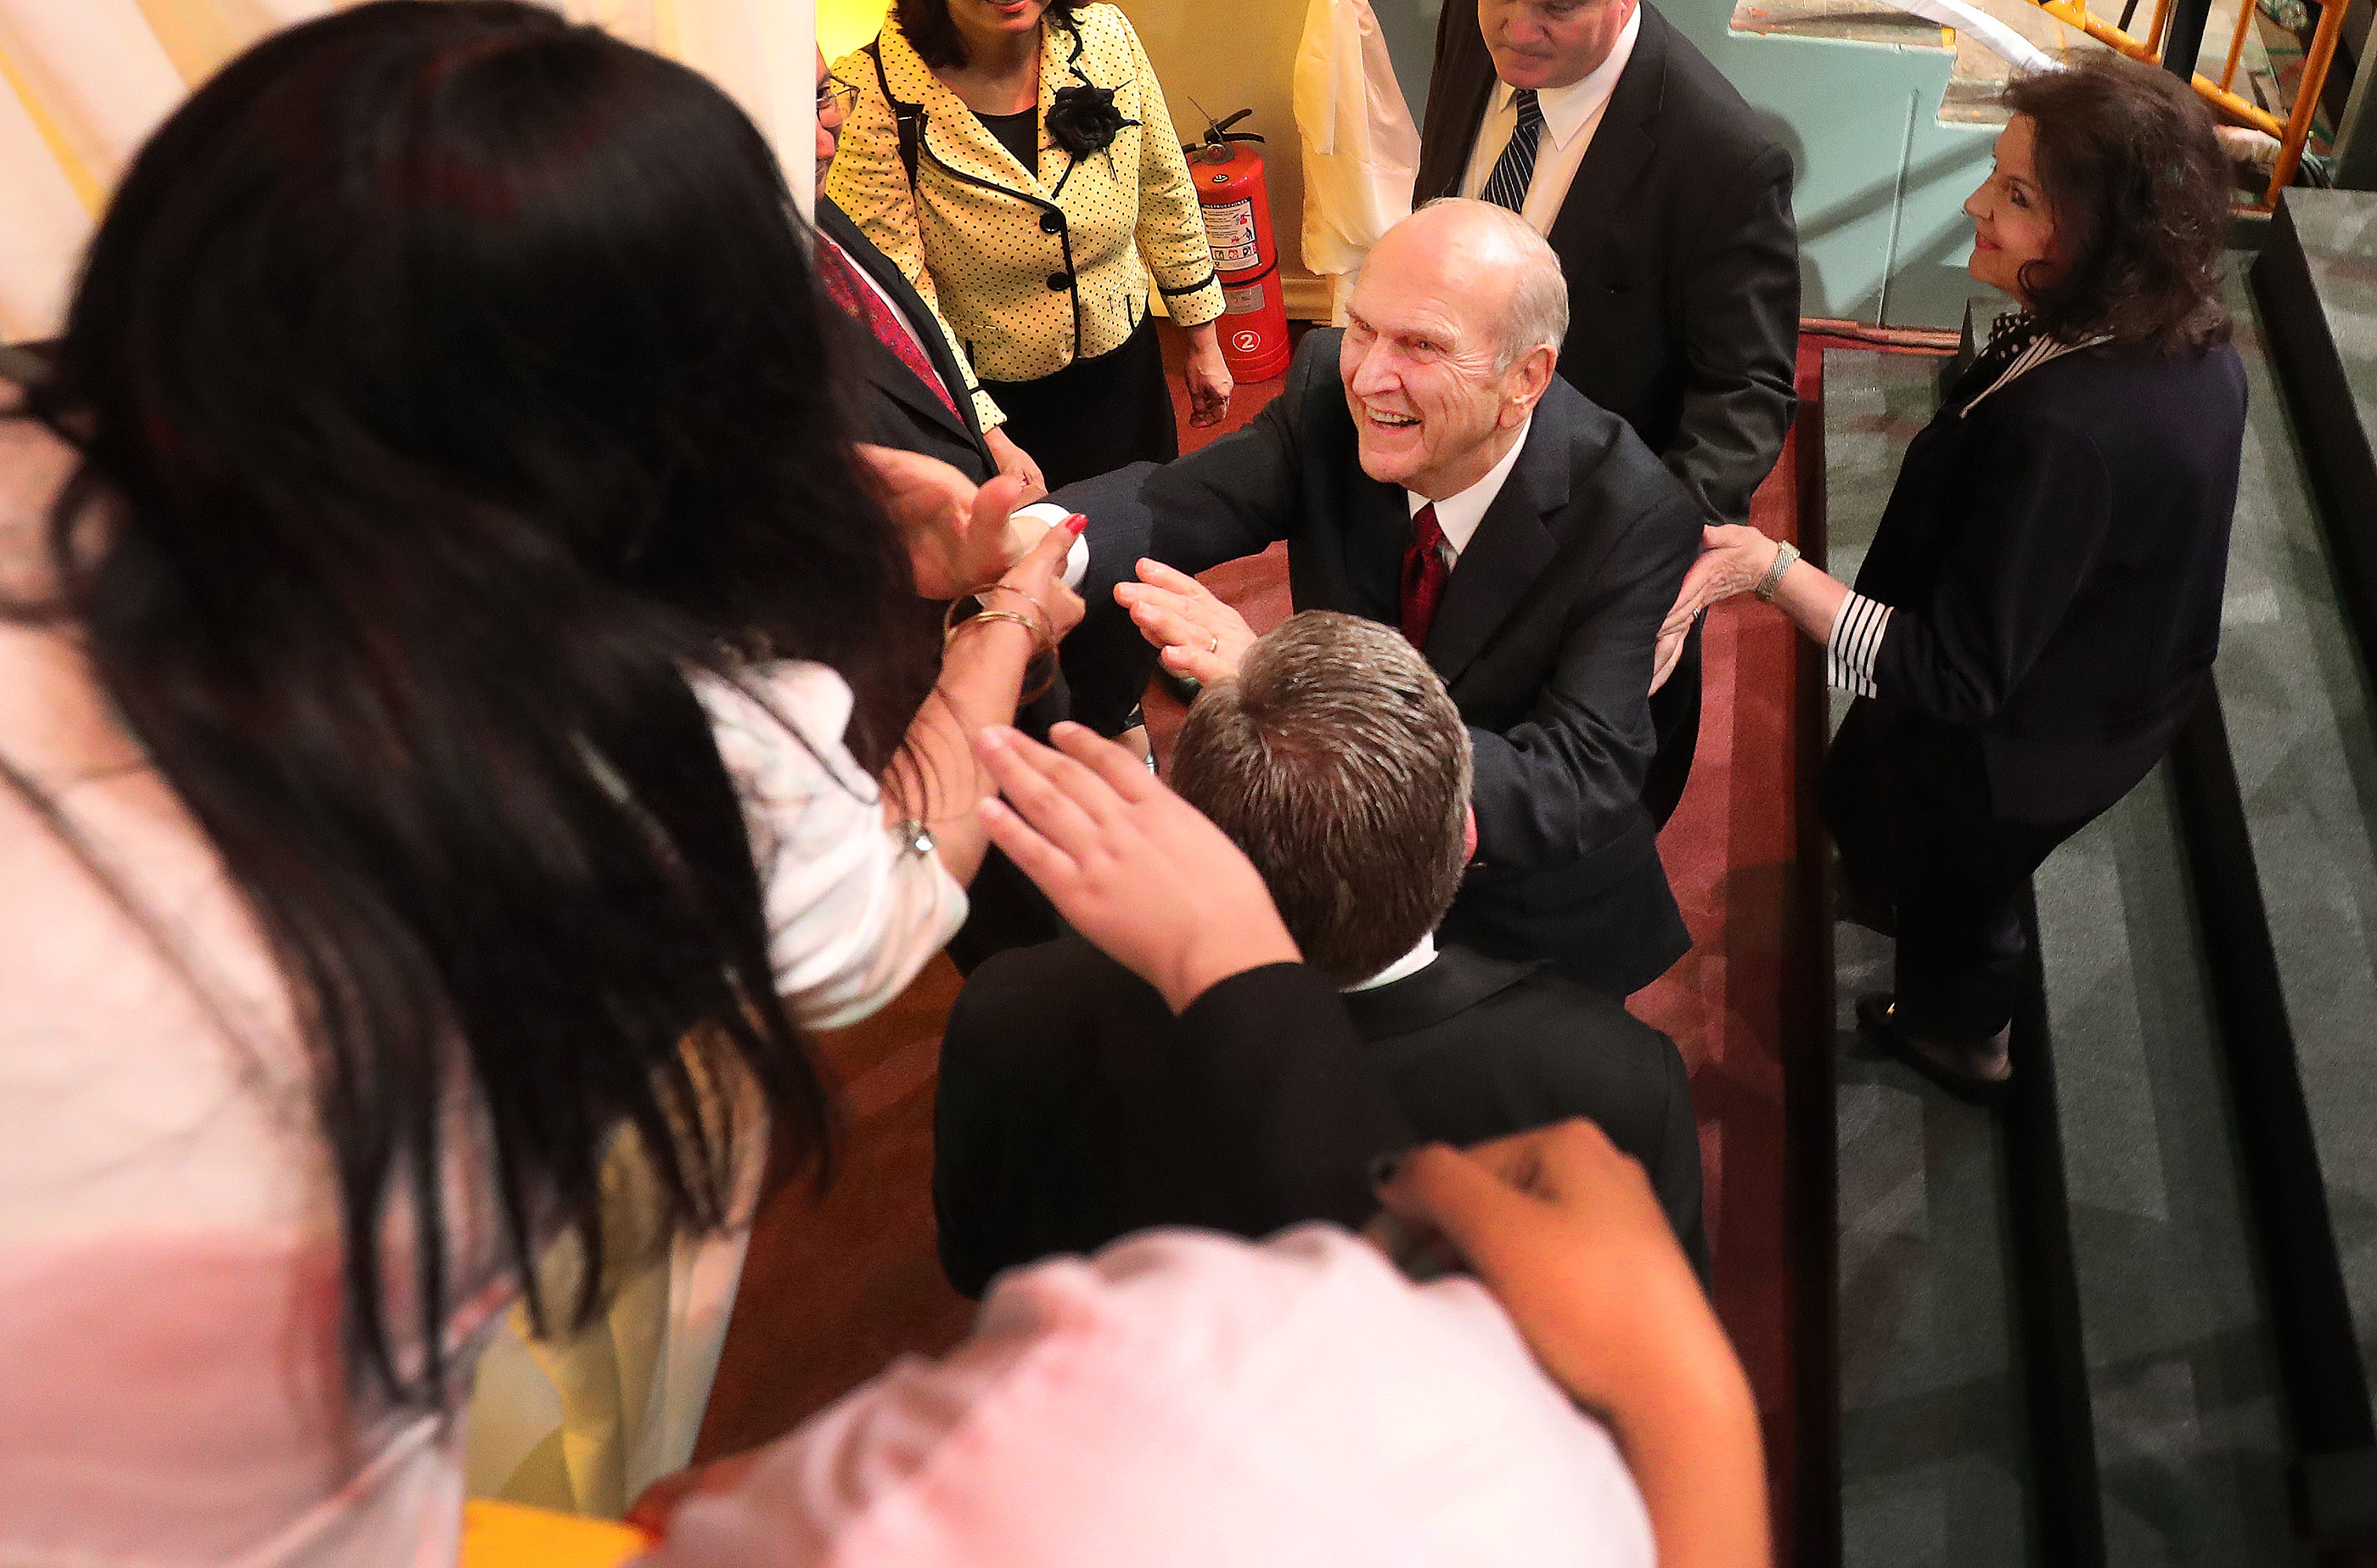 President Russell M. Nelson of The Church of Jesus Christ of Latter-day Saints and how wife Sister Wendy Nelson greet attendees after a devotional in Lima, Peru on Oct. 20, 2018.